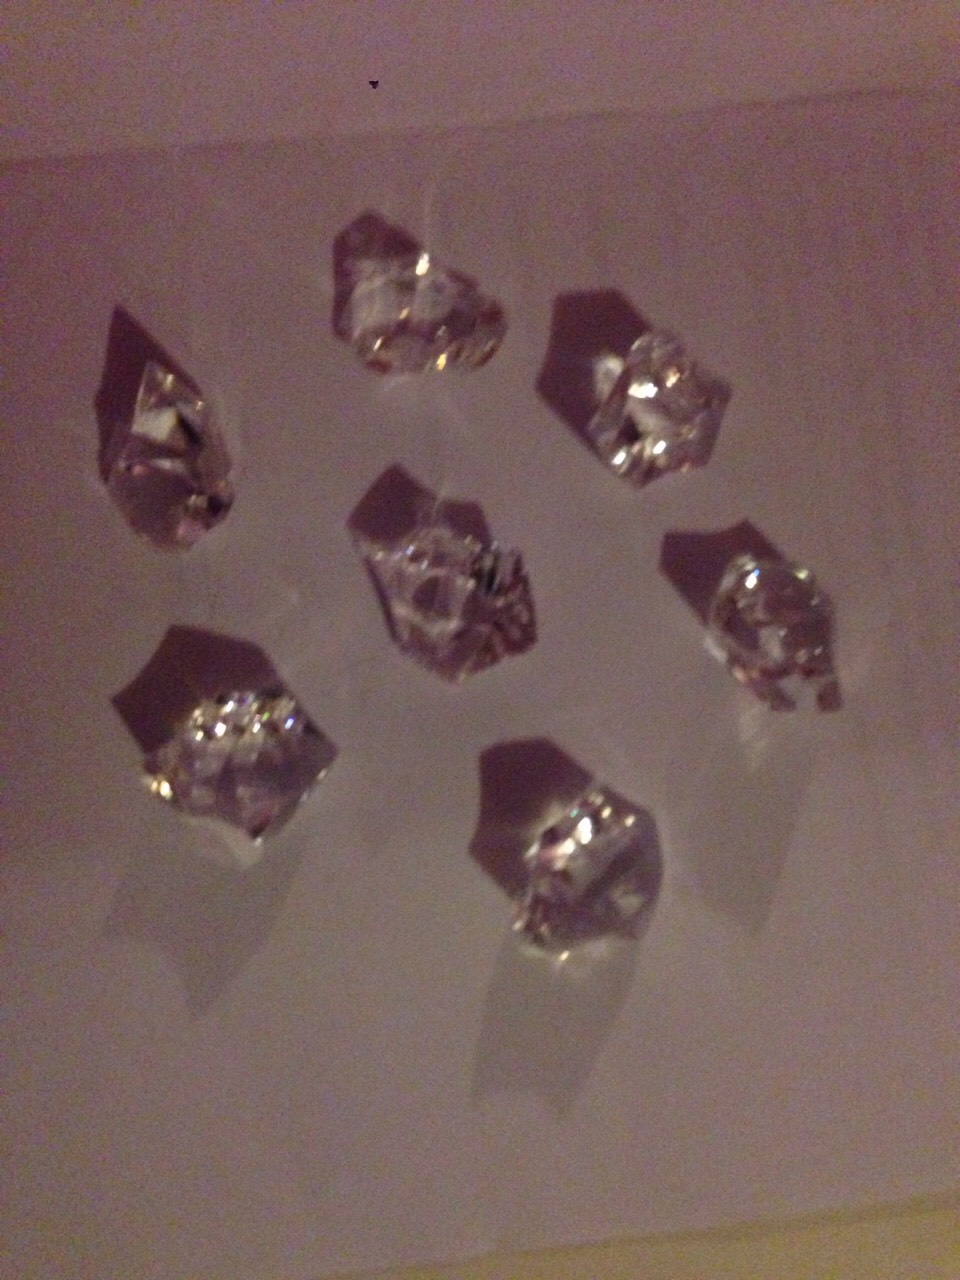 Then get any sized/shaped rinestones and place them carefully in the glass bowl